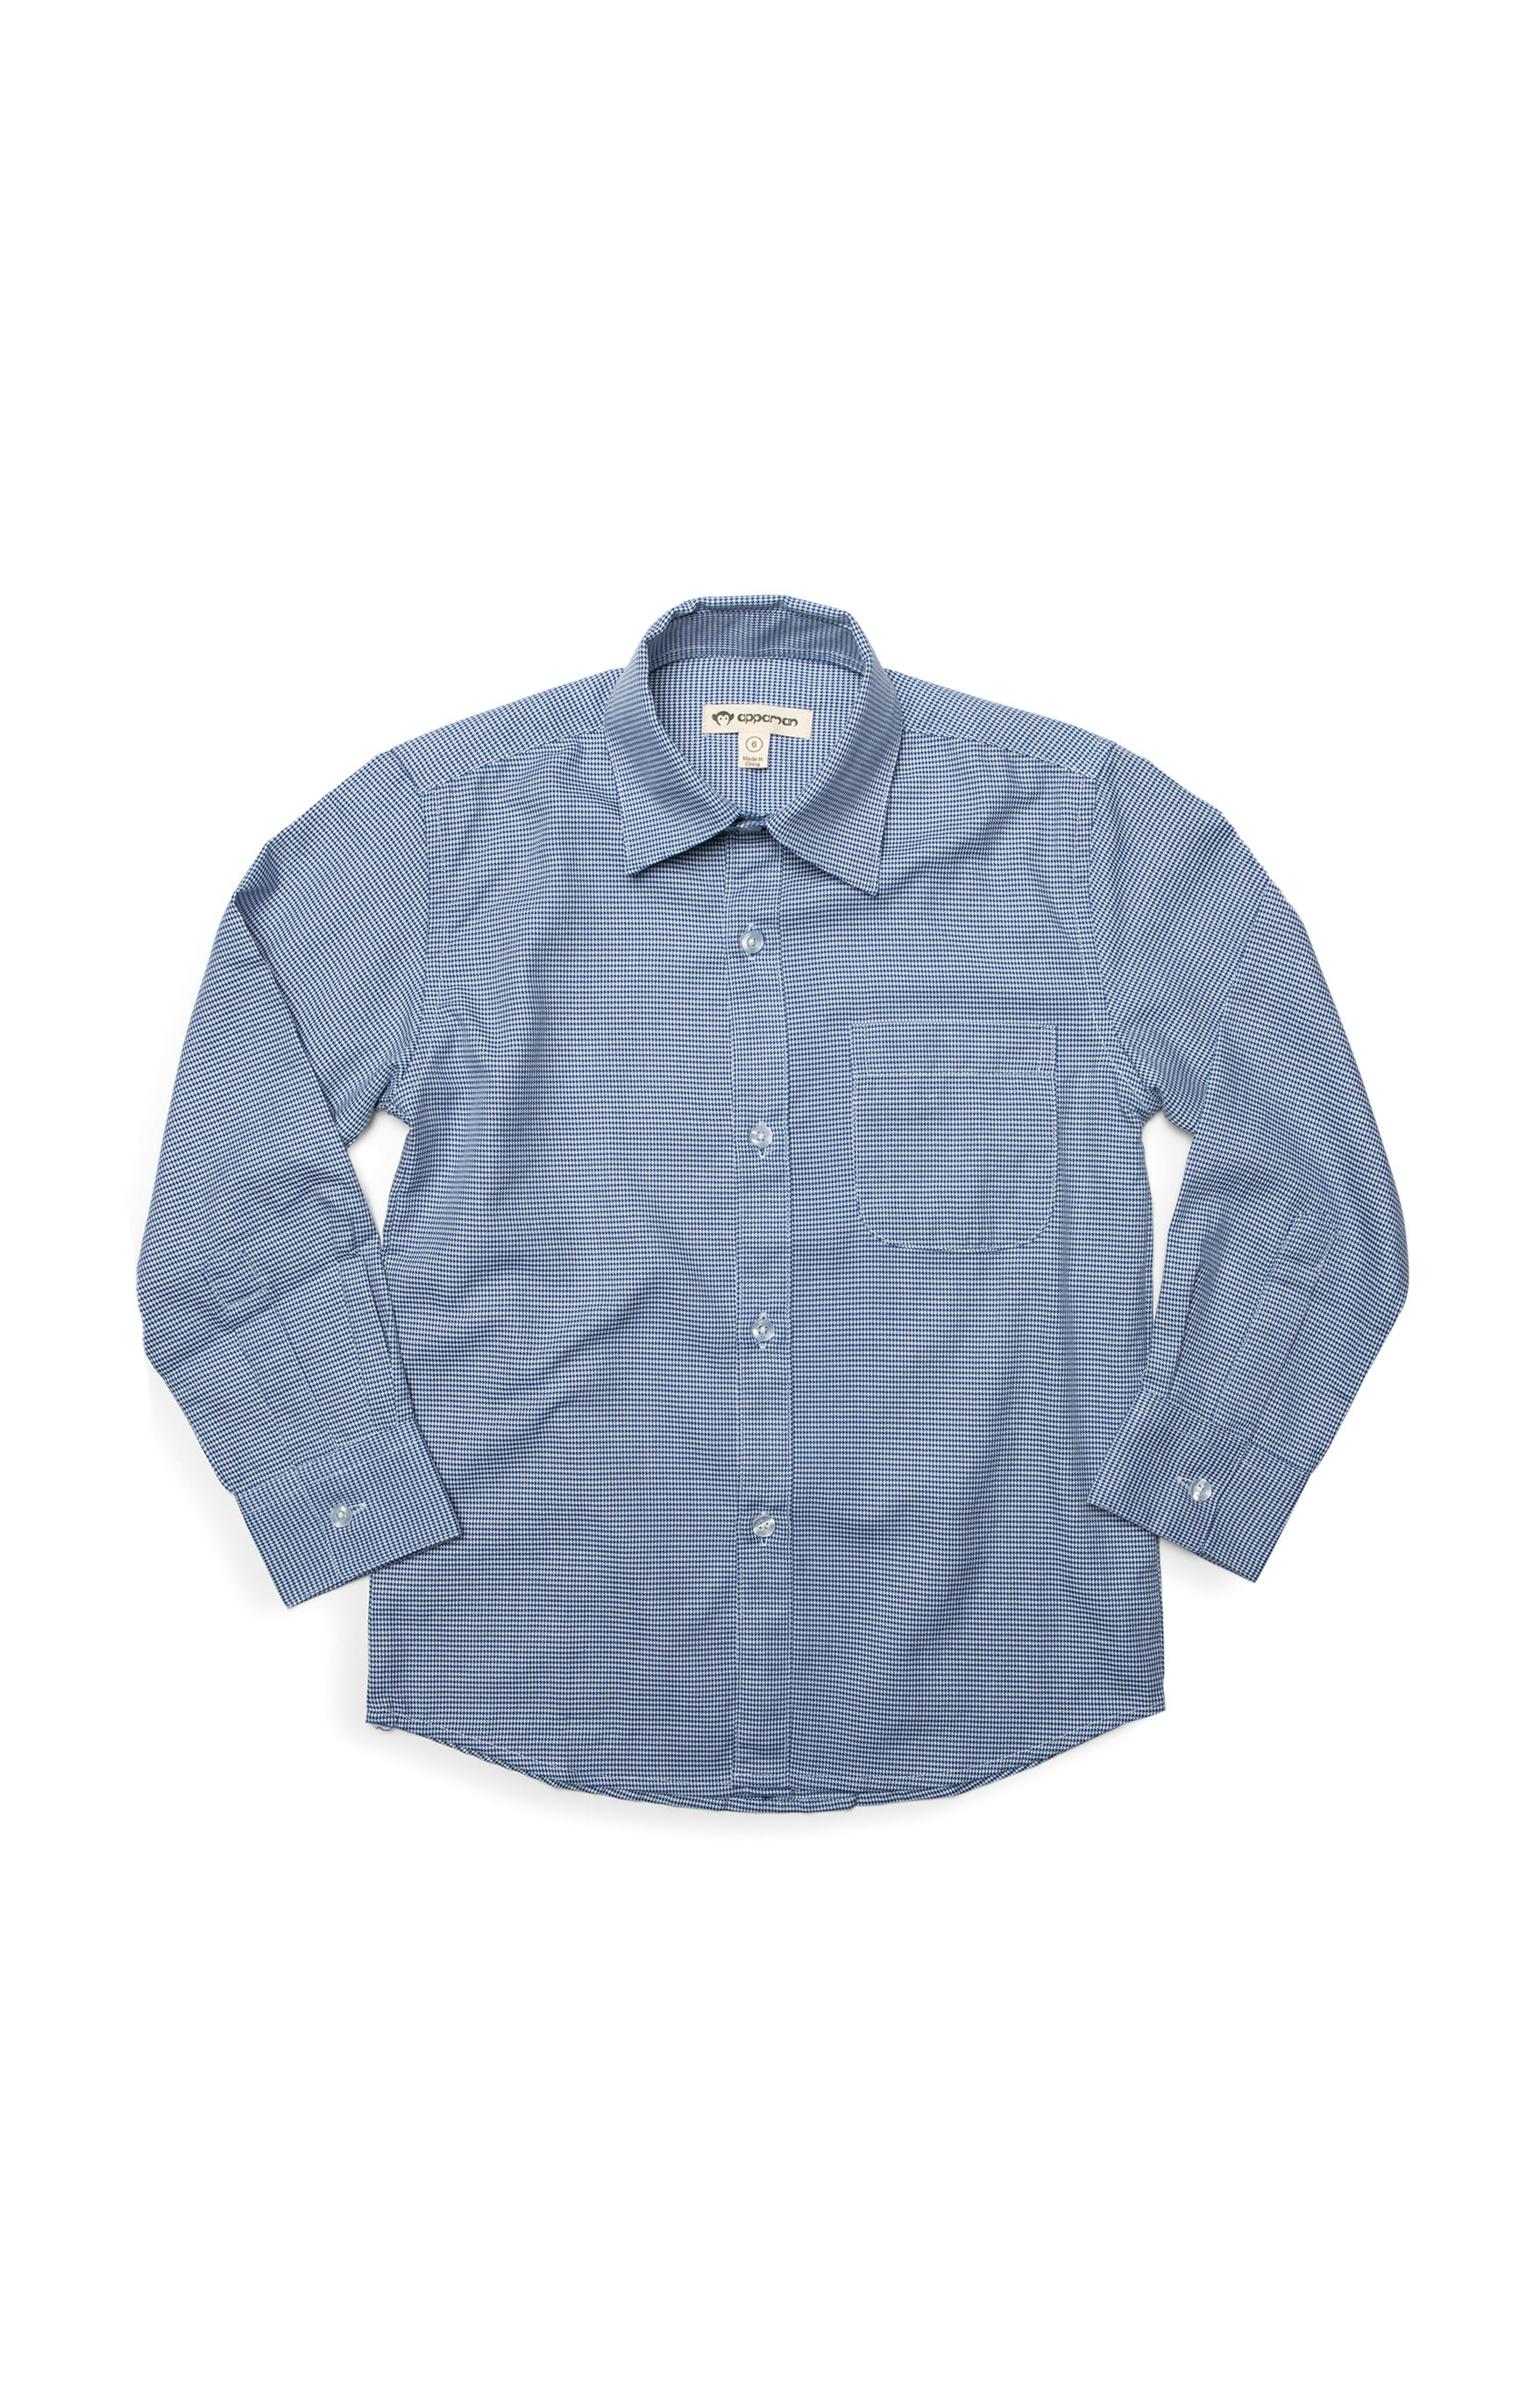 Appaman Dress Shirt - Navy Houndstooth